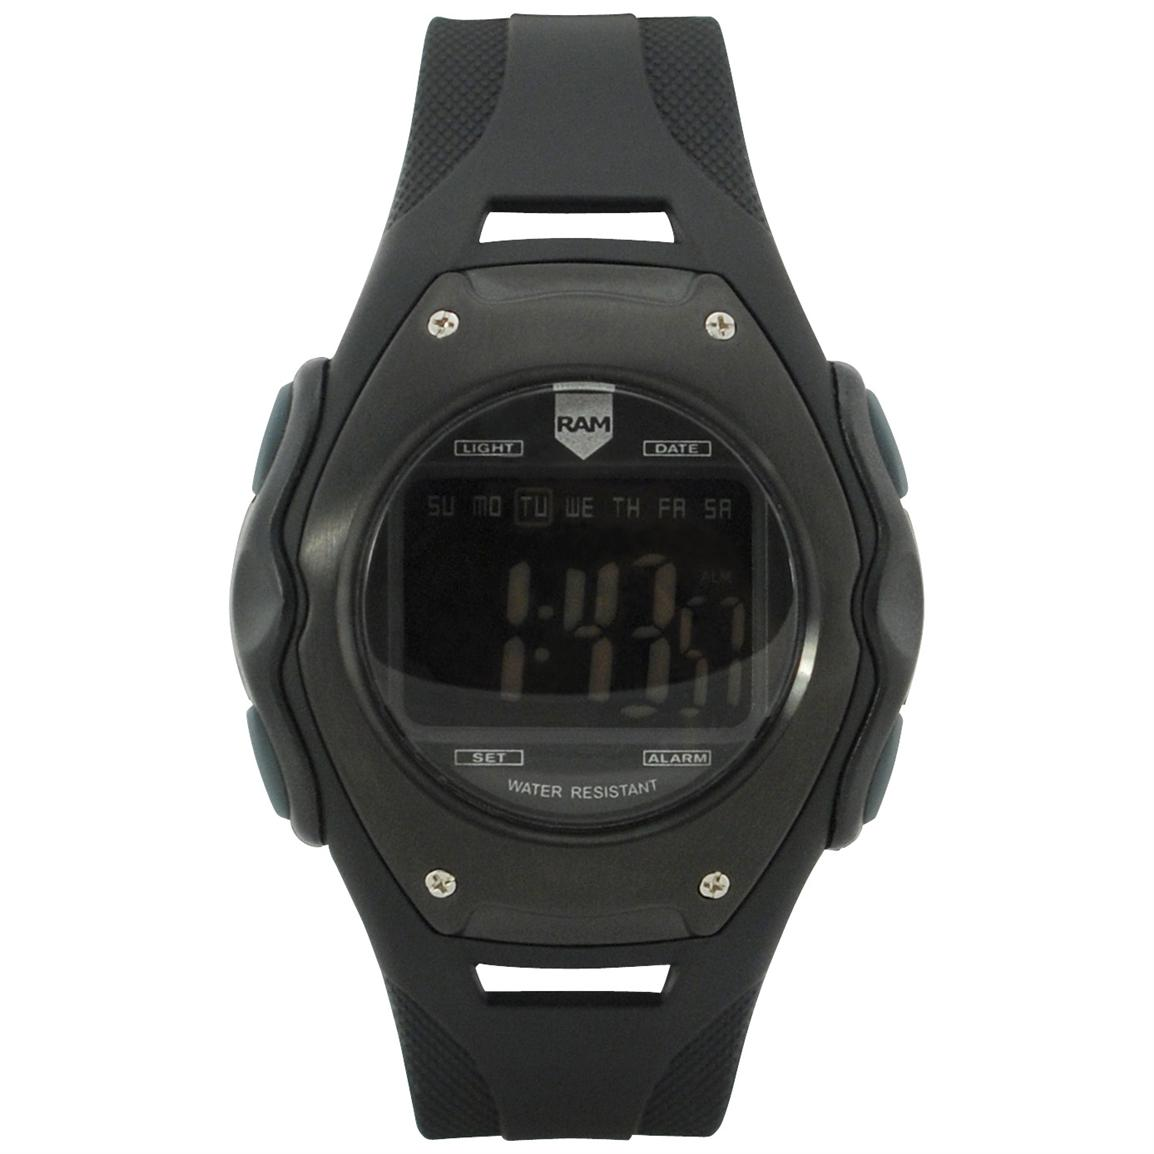 Ram 600 Series Digital Tactical Watch, Black